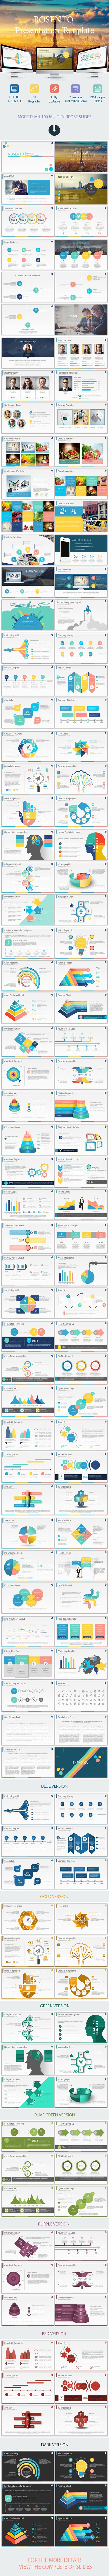 Rosento - Business Keynote Template #keynote #presentation Download: http://graphicriver.net/item/rosento-business-keynote-template/11648266?ref=ksioks